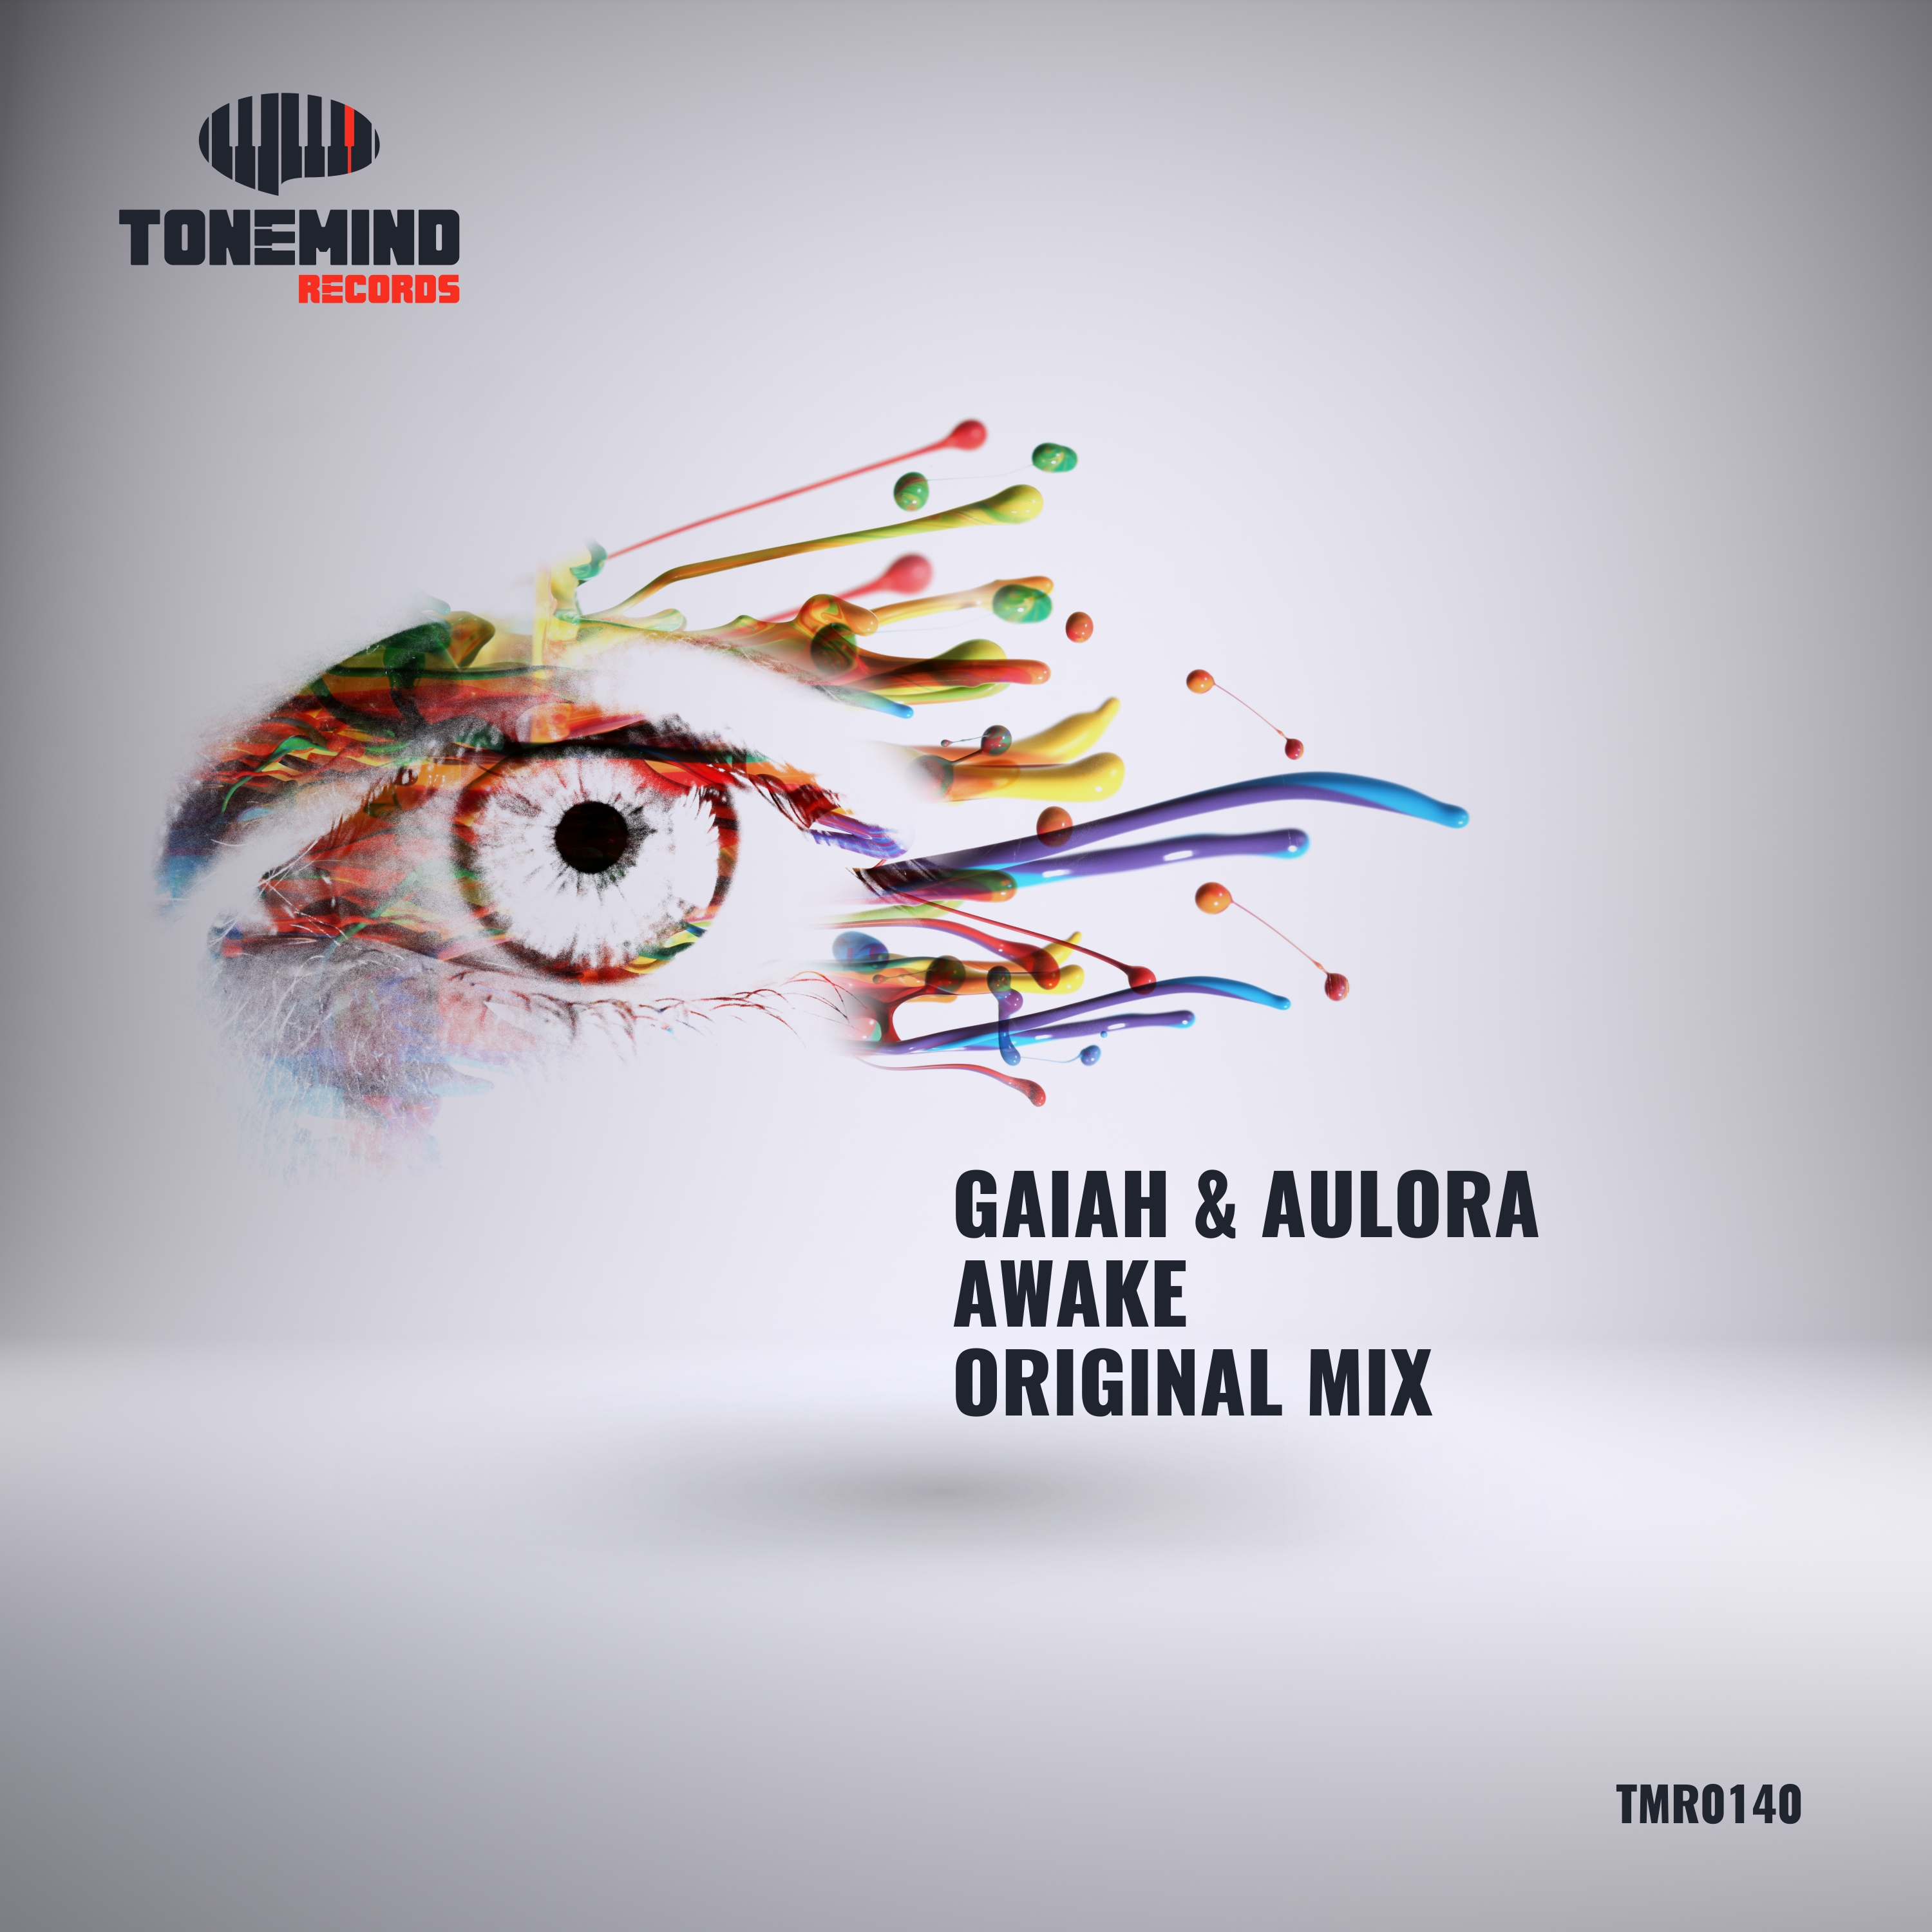 Gaiah & Aulora - Awake (Original mix)